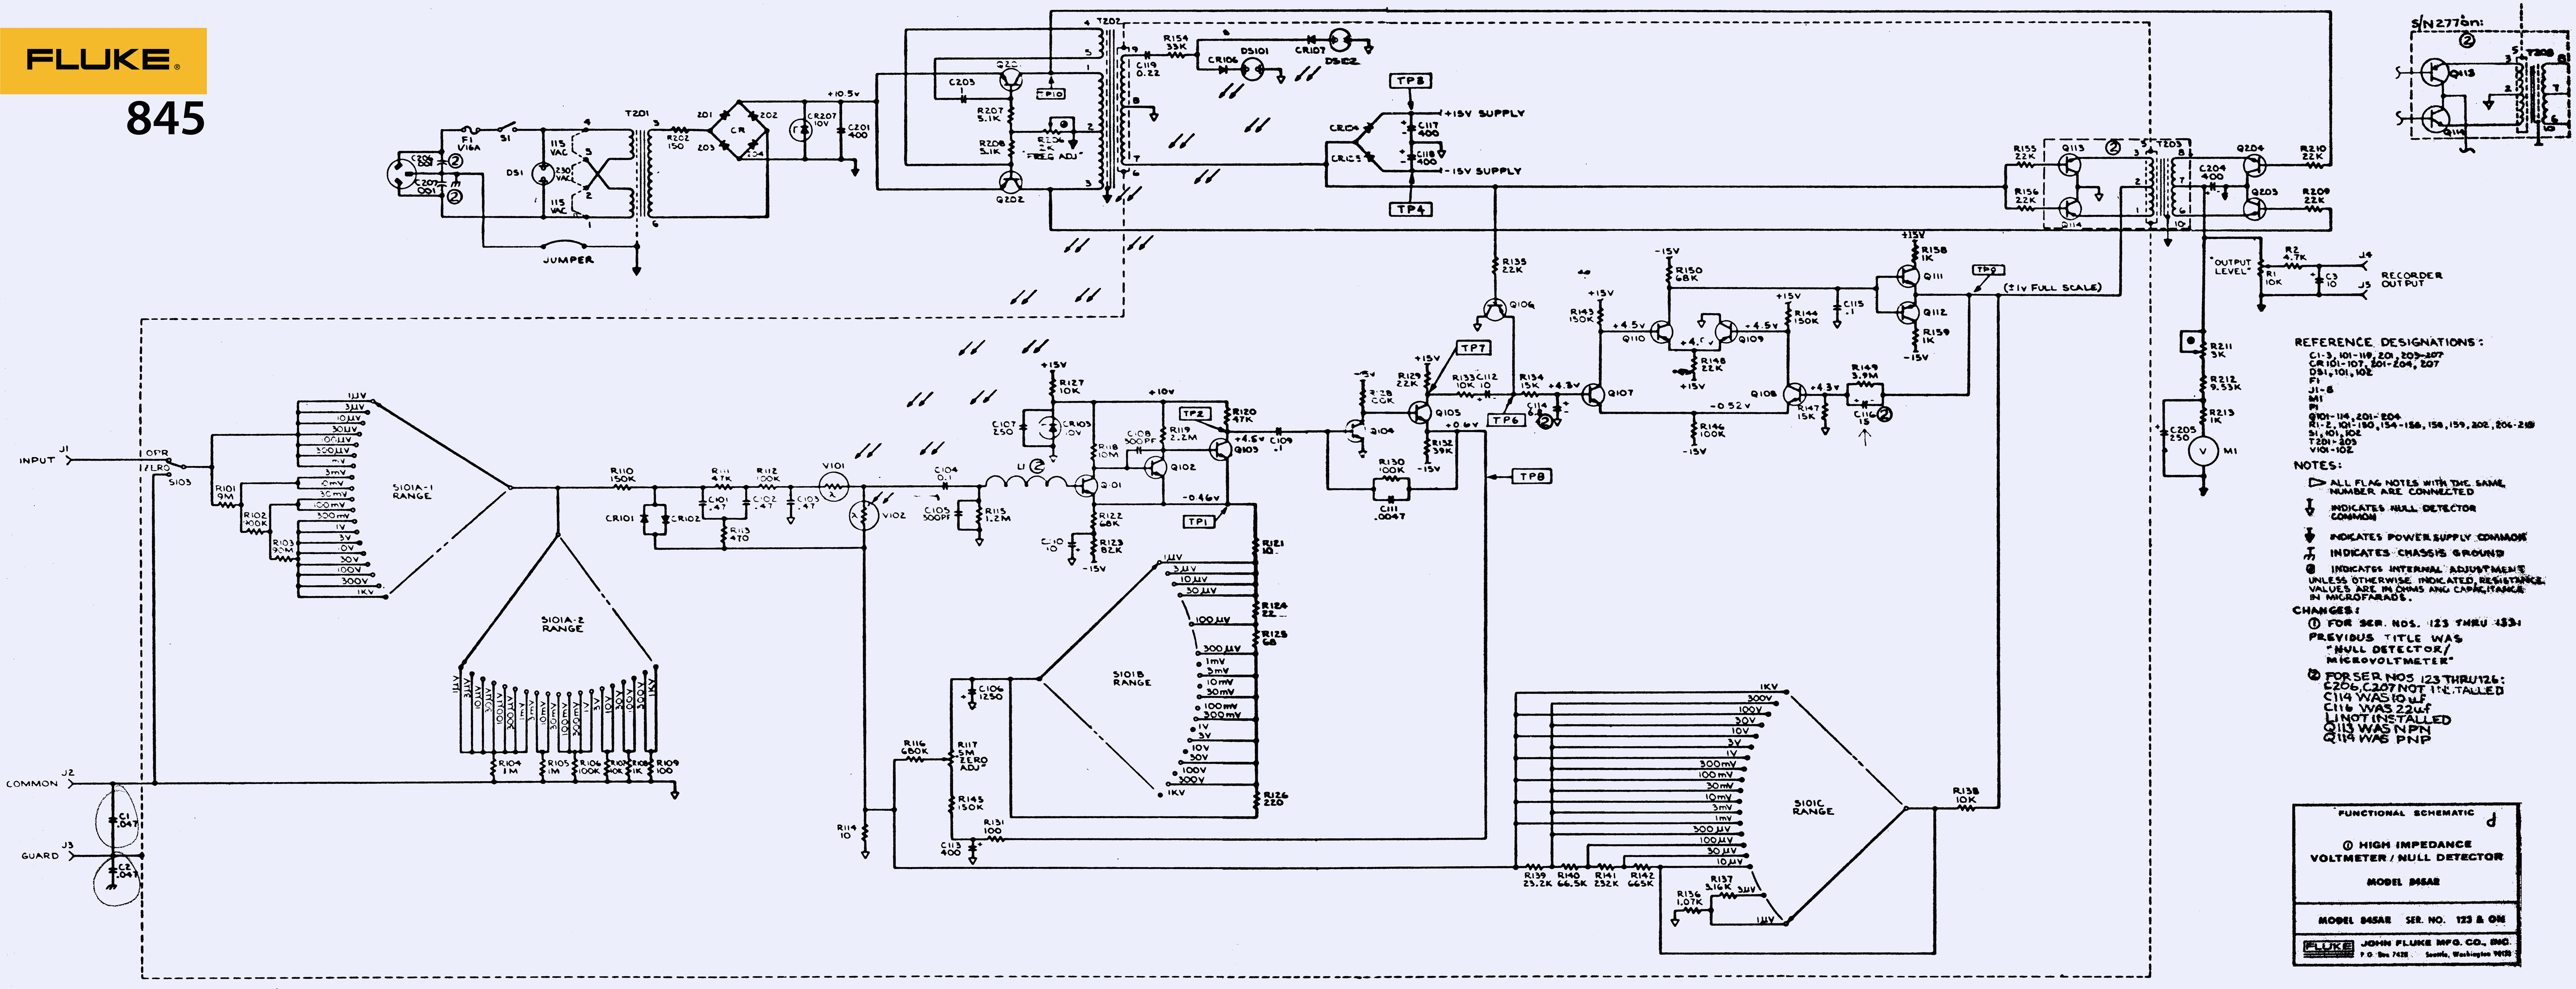 Repair And Tweaks For Fluke 845ab Null Meter Architectural Engineering Schematics Its Rather Simple Concept With Just Few Parts In Each Block Easy To Understand Operation Unlike Most Of Modern Test Instrumentation Gear Filled